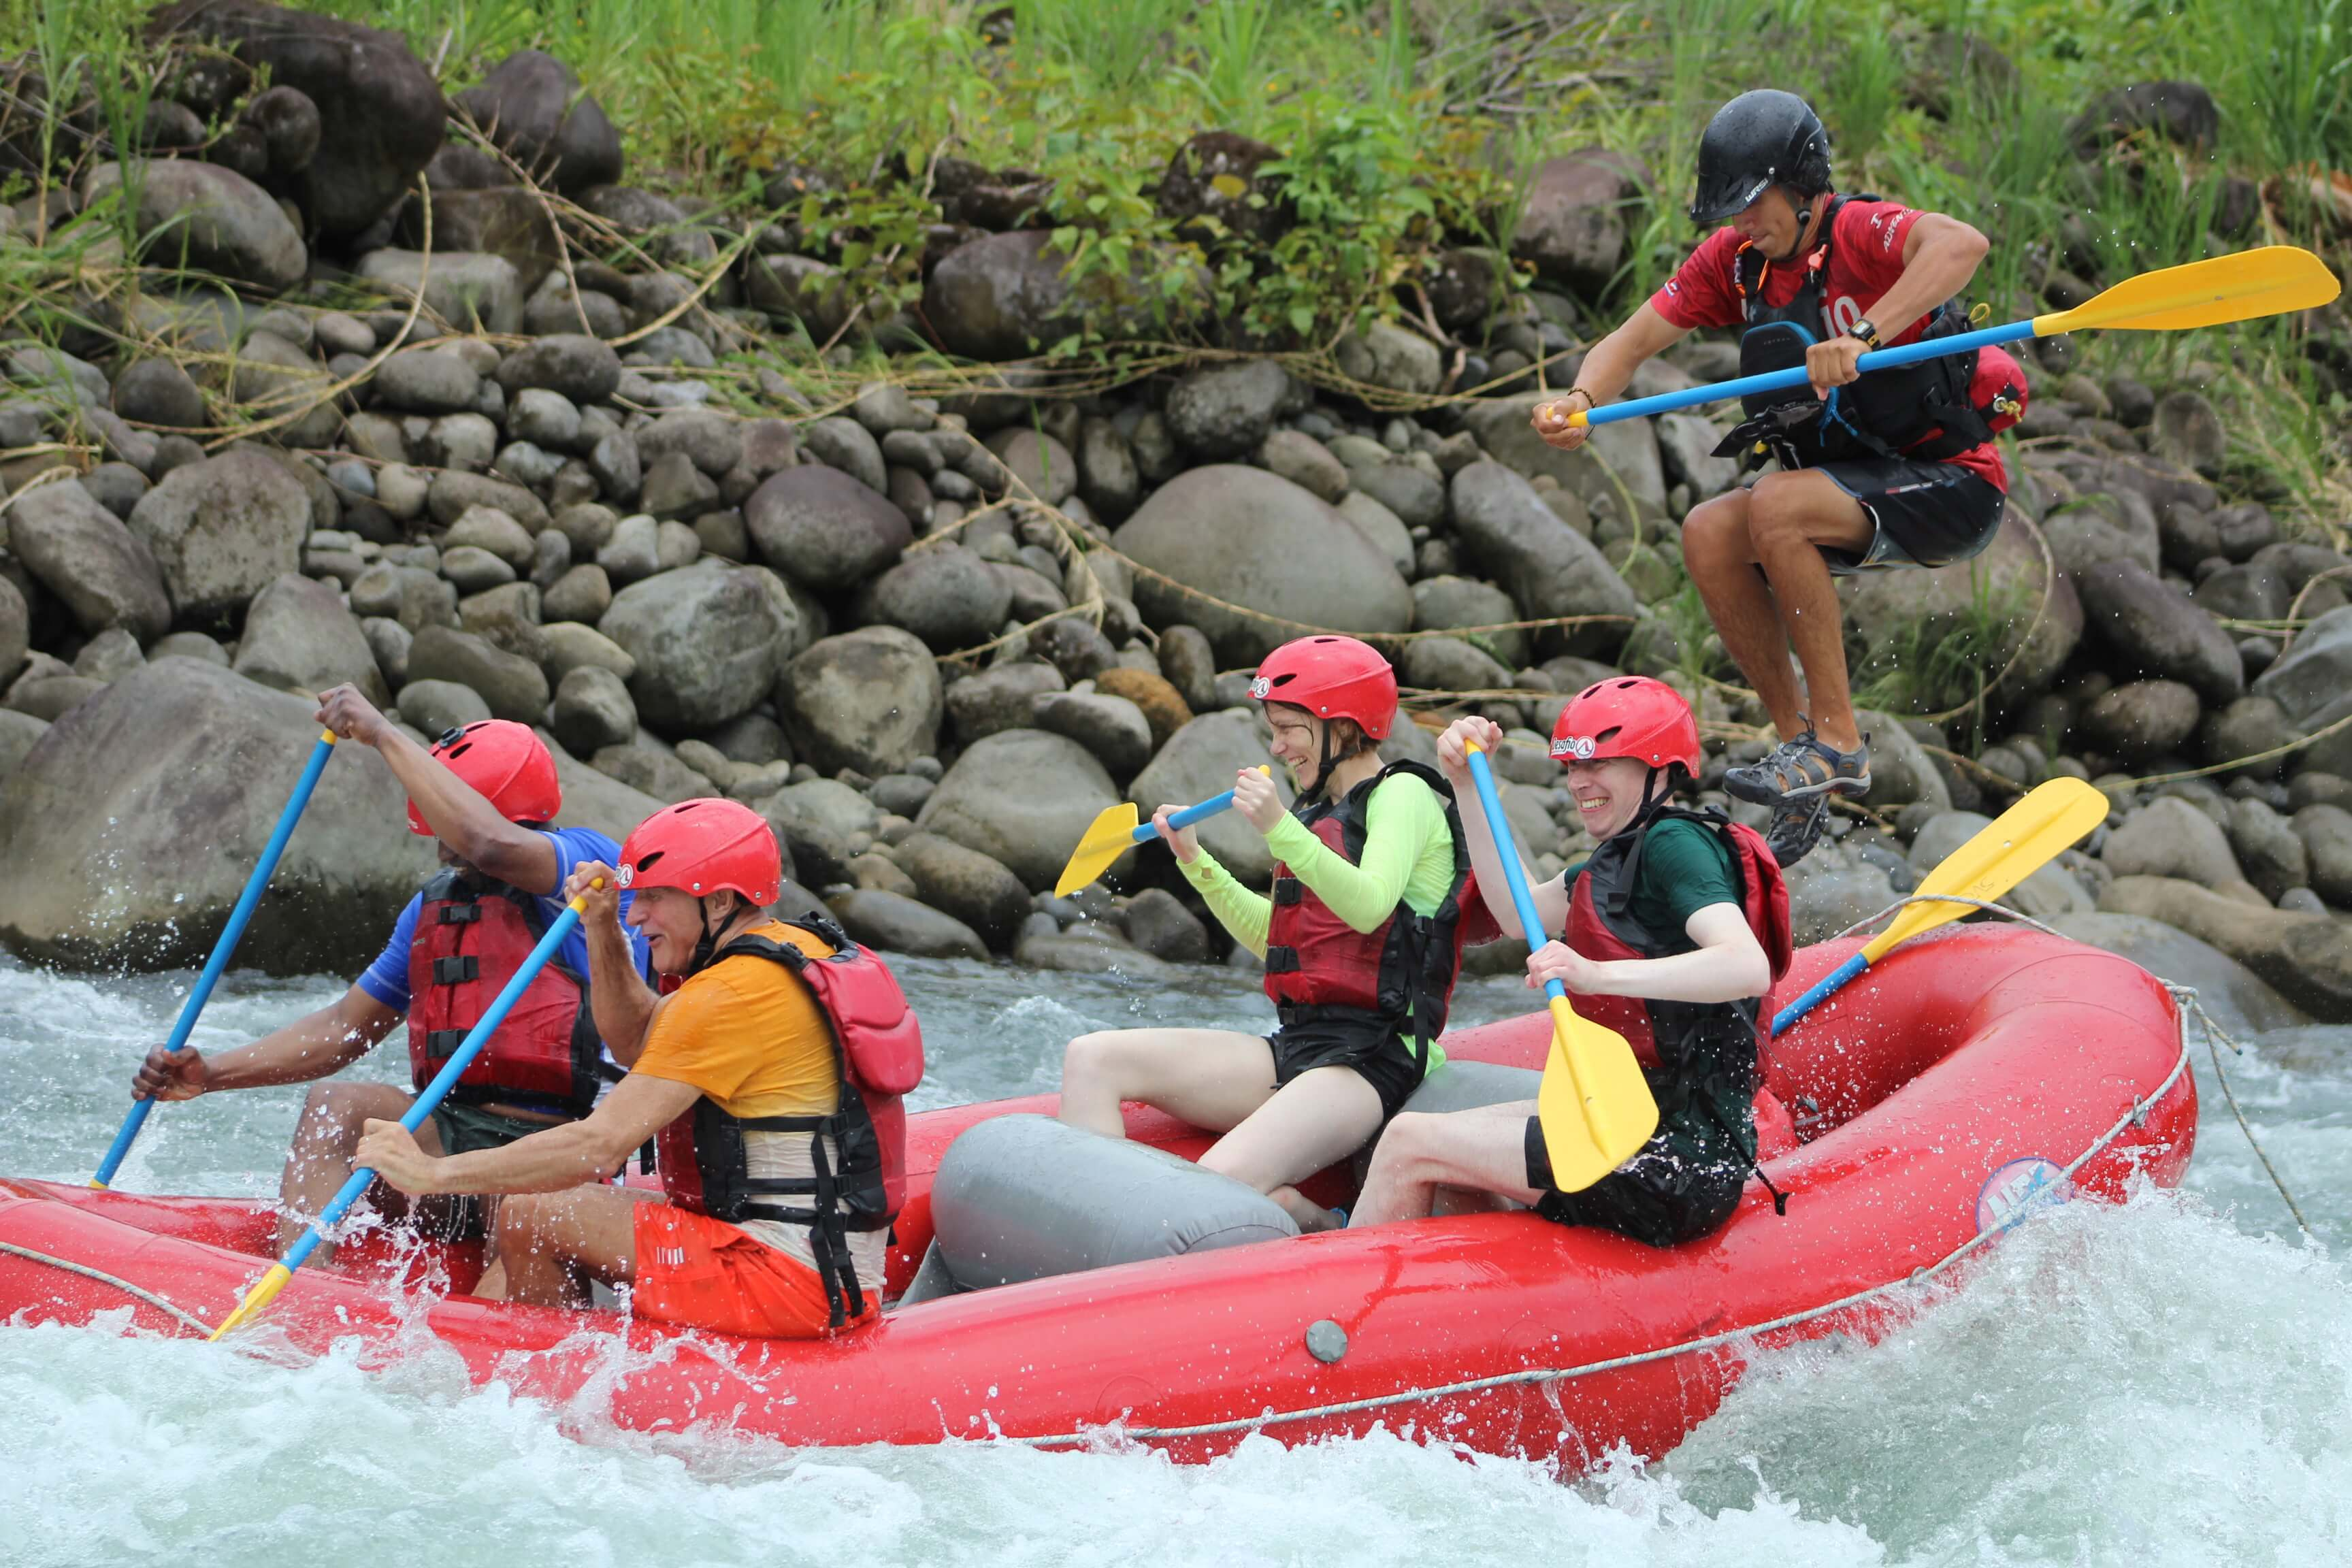 Our guides enjoy their jobs on this extreme white water rafting trip in Costa Rica on the Sarapiqui River.